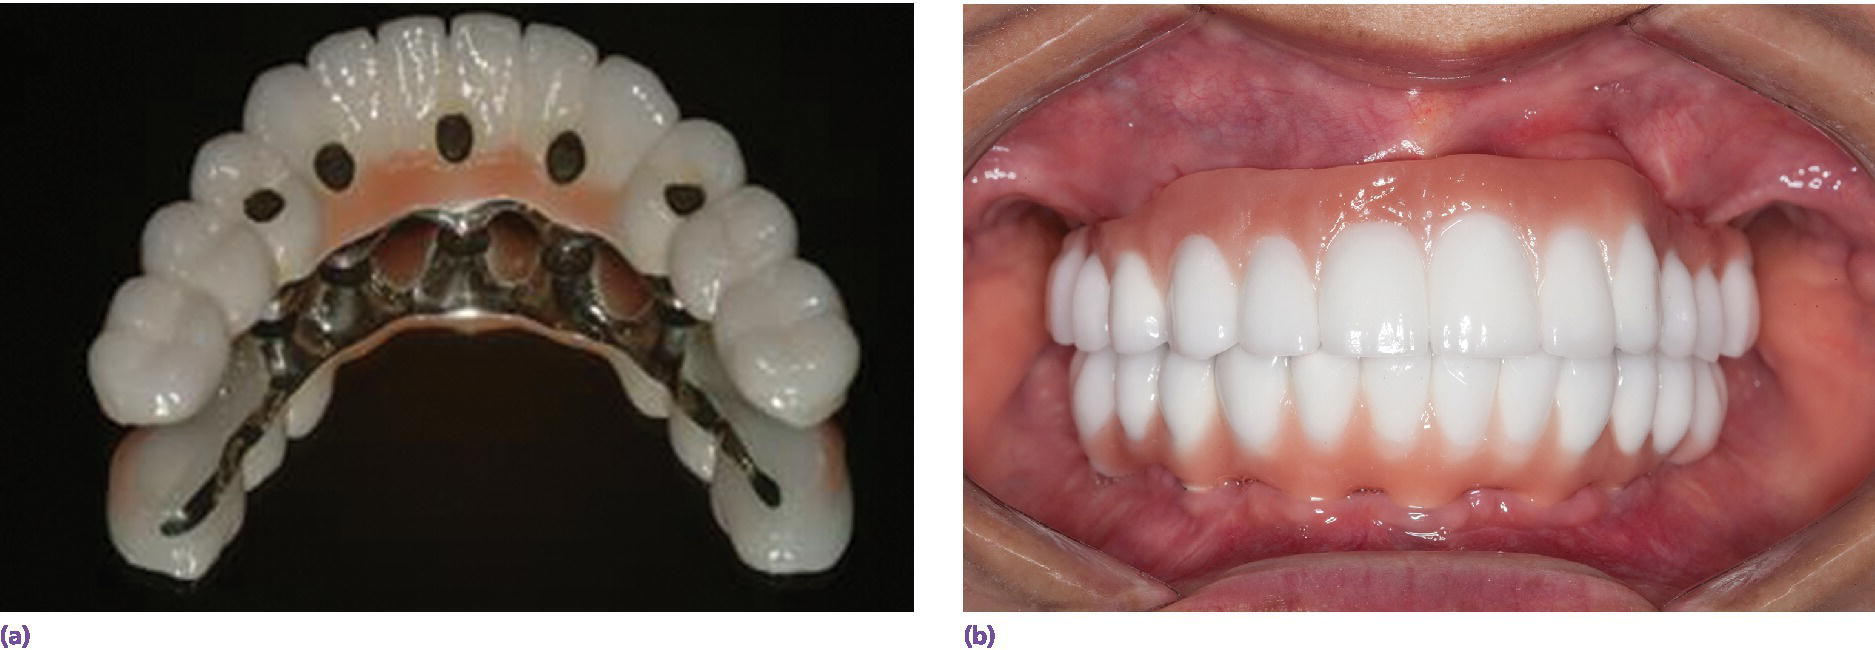 Photos of prosthesis construction with direct-to-fixture connection to secure cantilever design as sole osseous anchorage in interforaminal mandible opposing a maxillary fixed dental prosthesis(left,right).